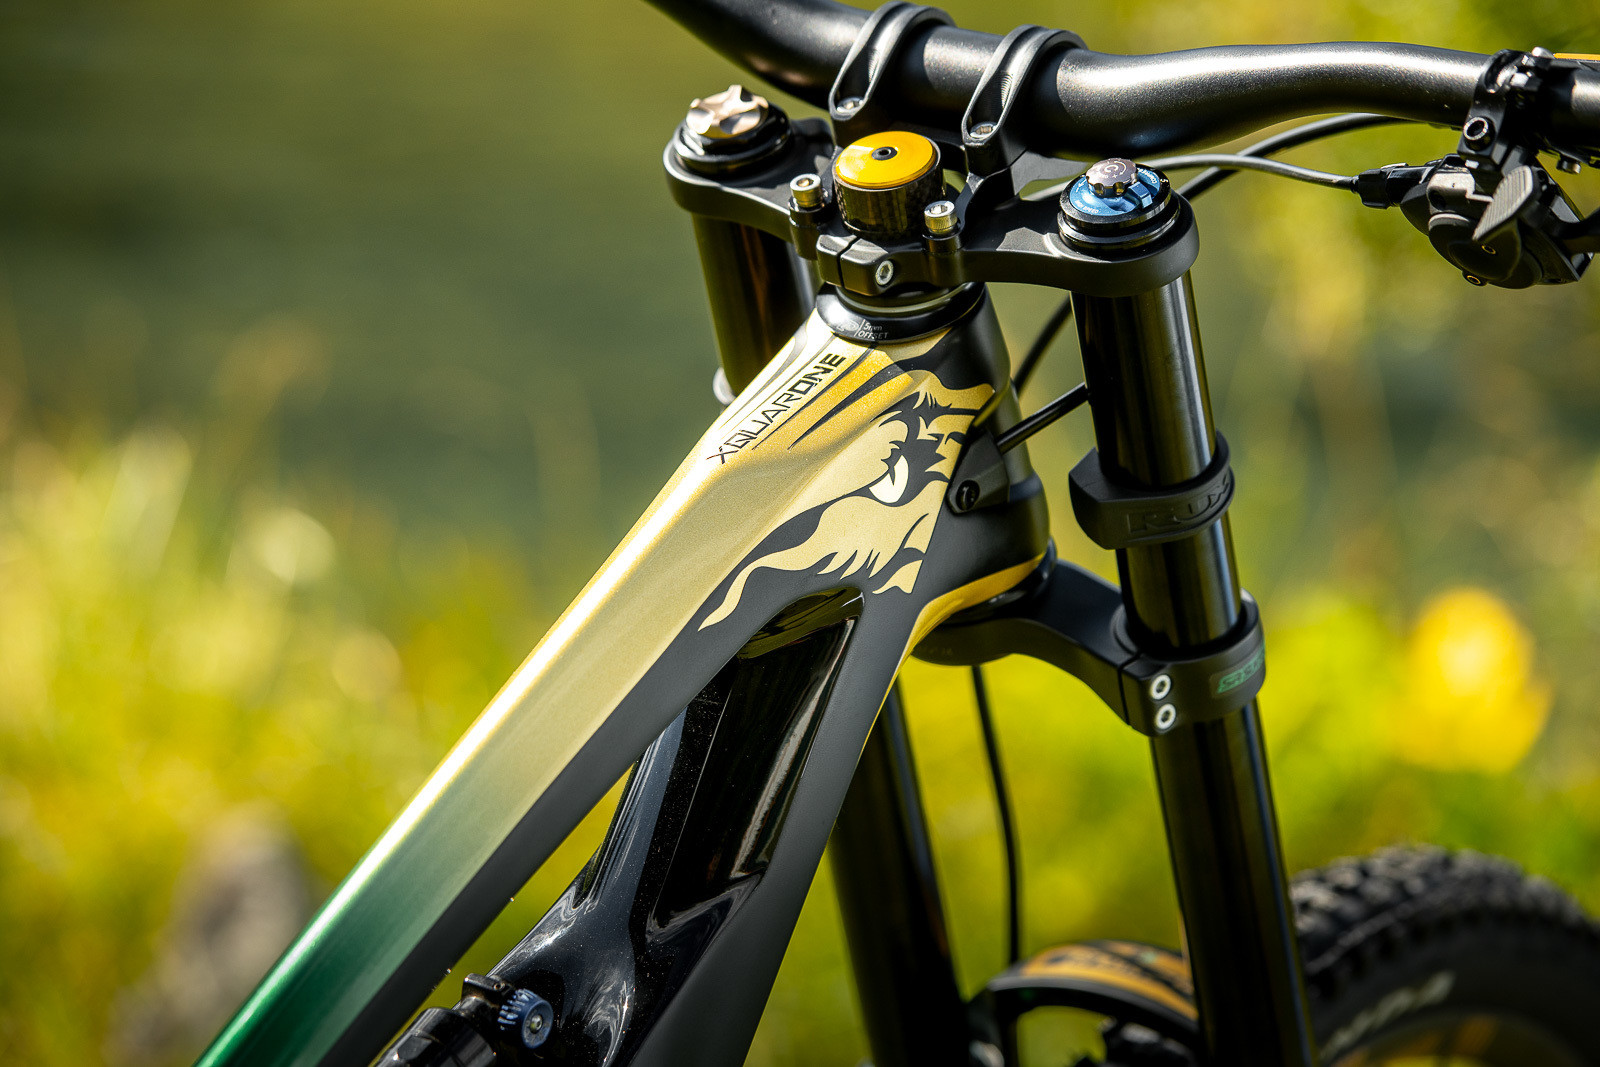 So Sick - WORLD CHAMPS BIKES - Mick & Tracey Hannah's Polygons - Mountain Biking Pictures - Vital MTB